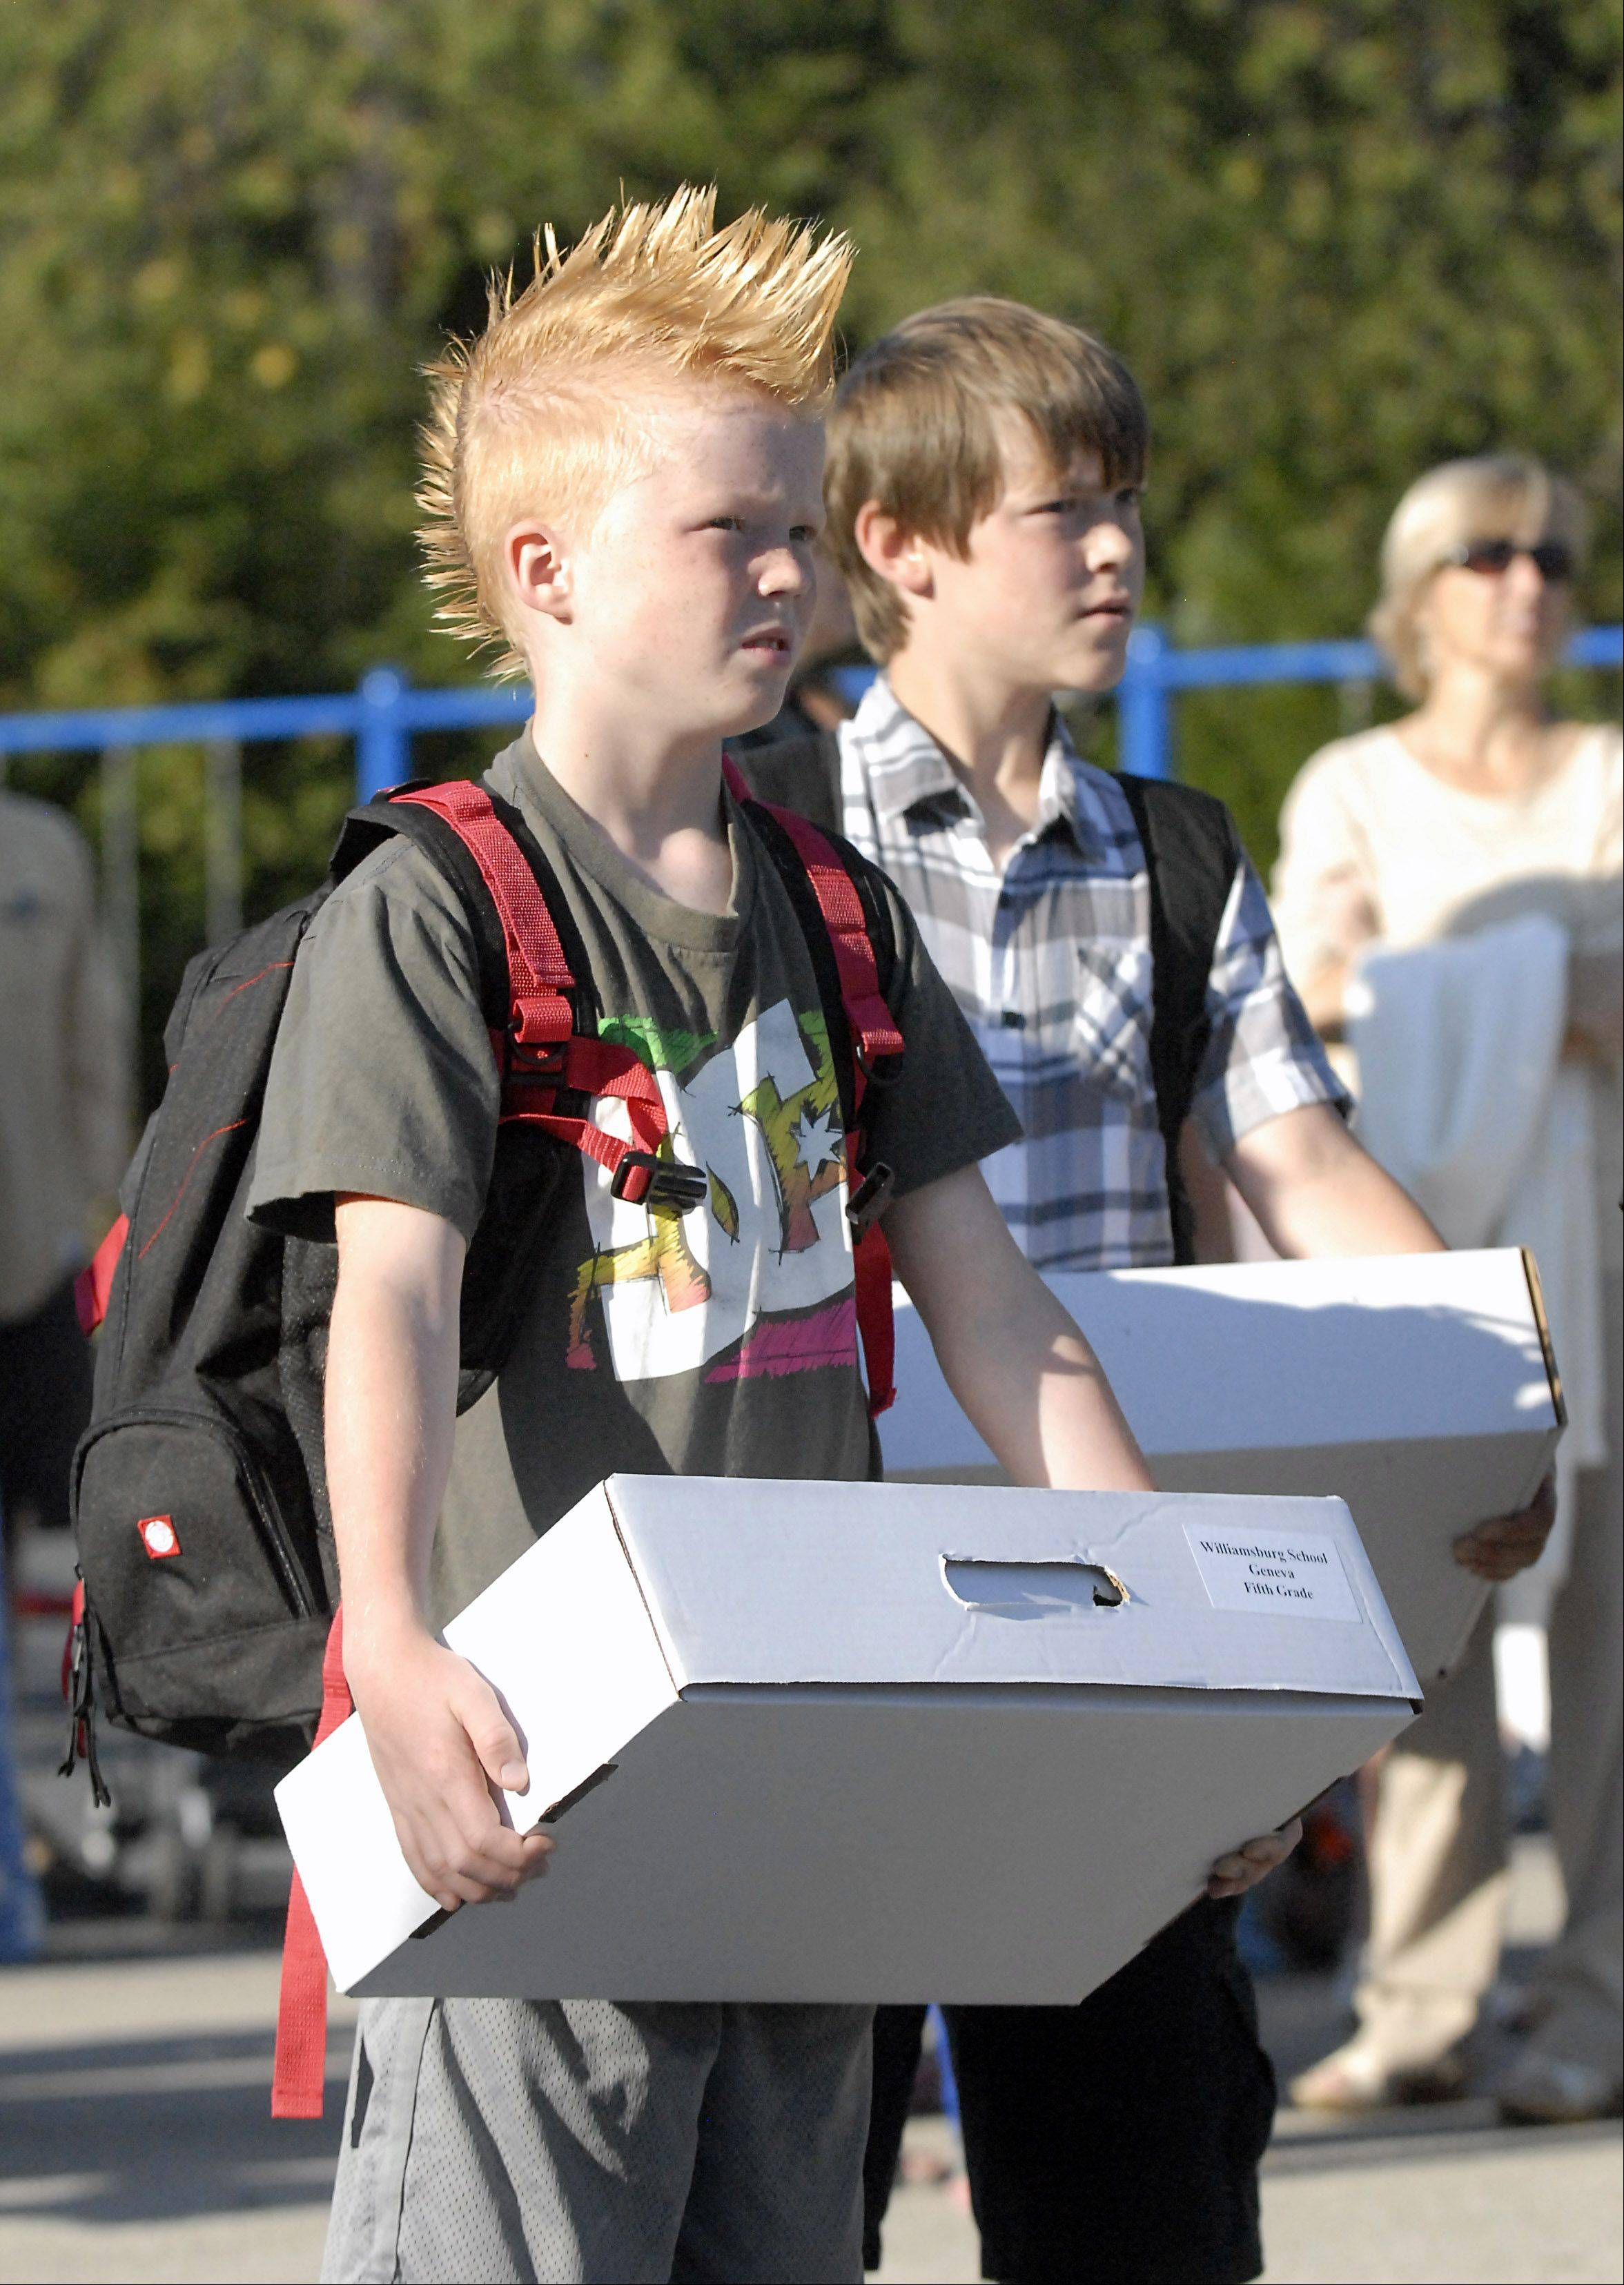 Juda Reynolds, 10, holds his box of school supplies ready to start the fifth grade on the first day of school at Williamsburg Elementary School.